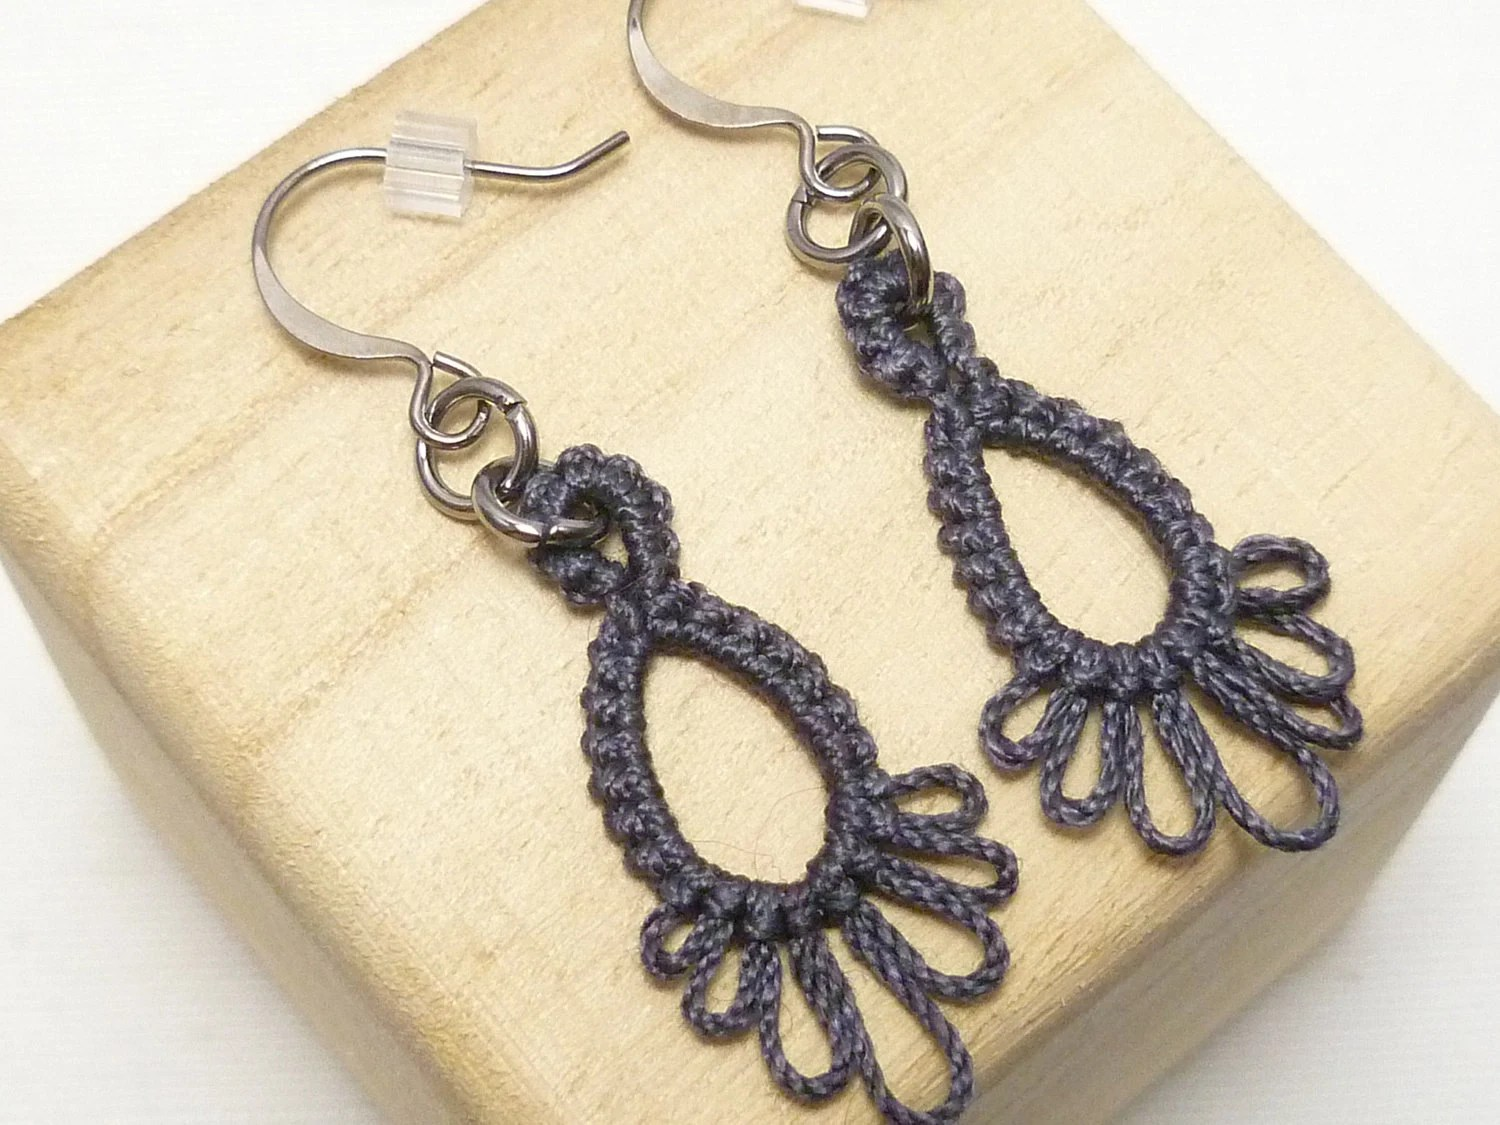 Tatted Lace Earrings in dark gray -Frilly Drips -MTO